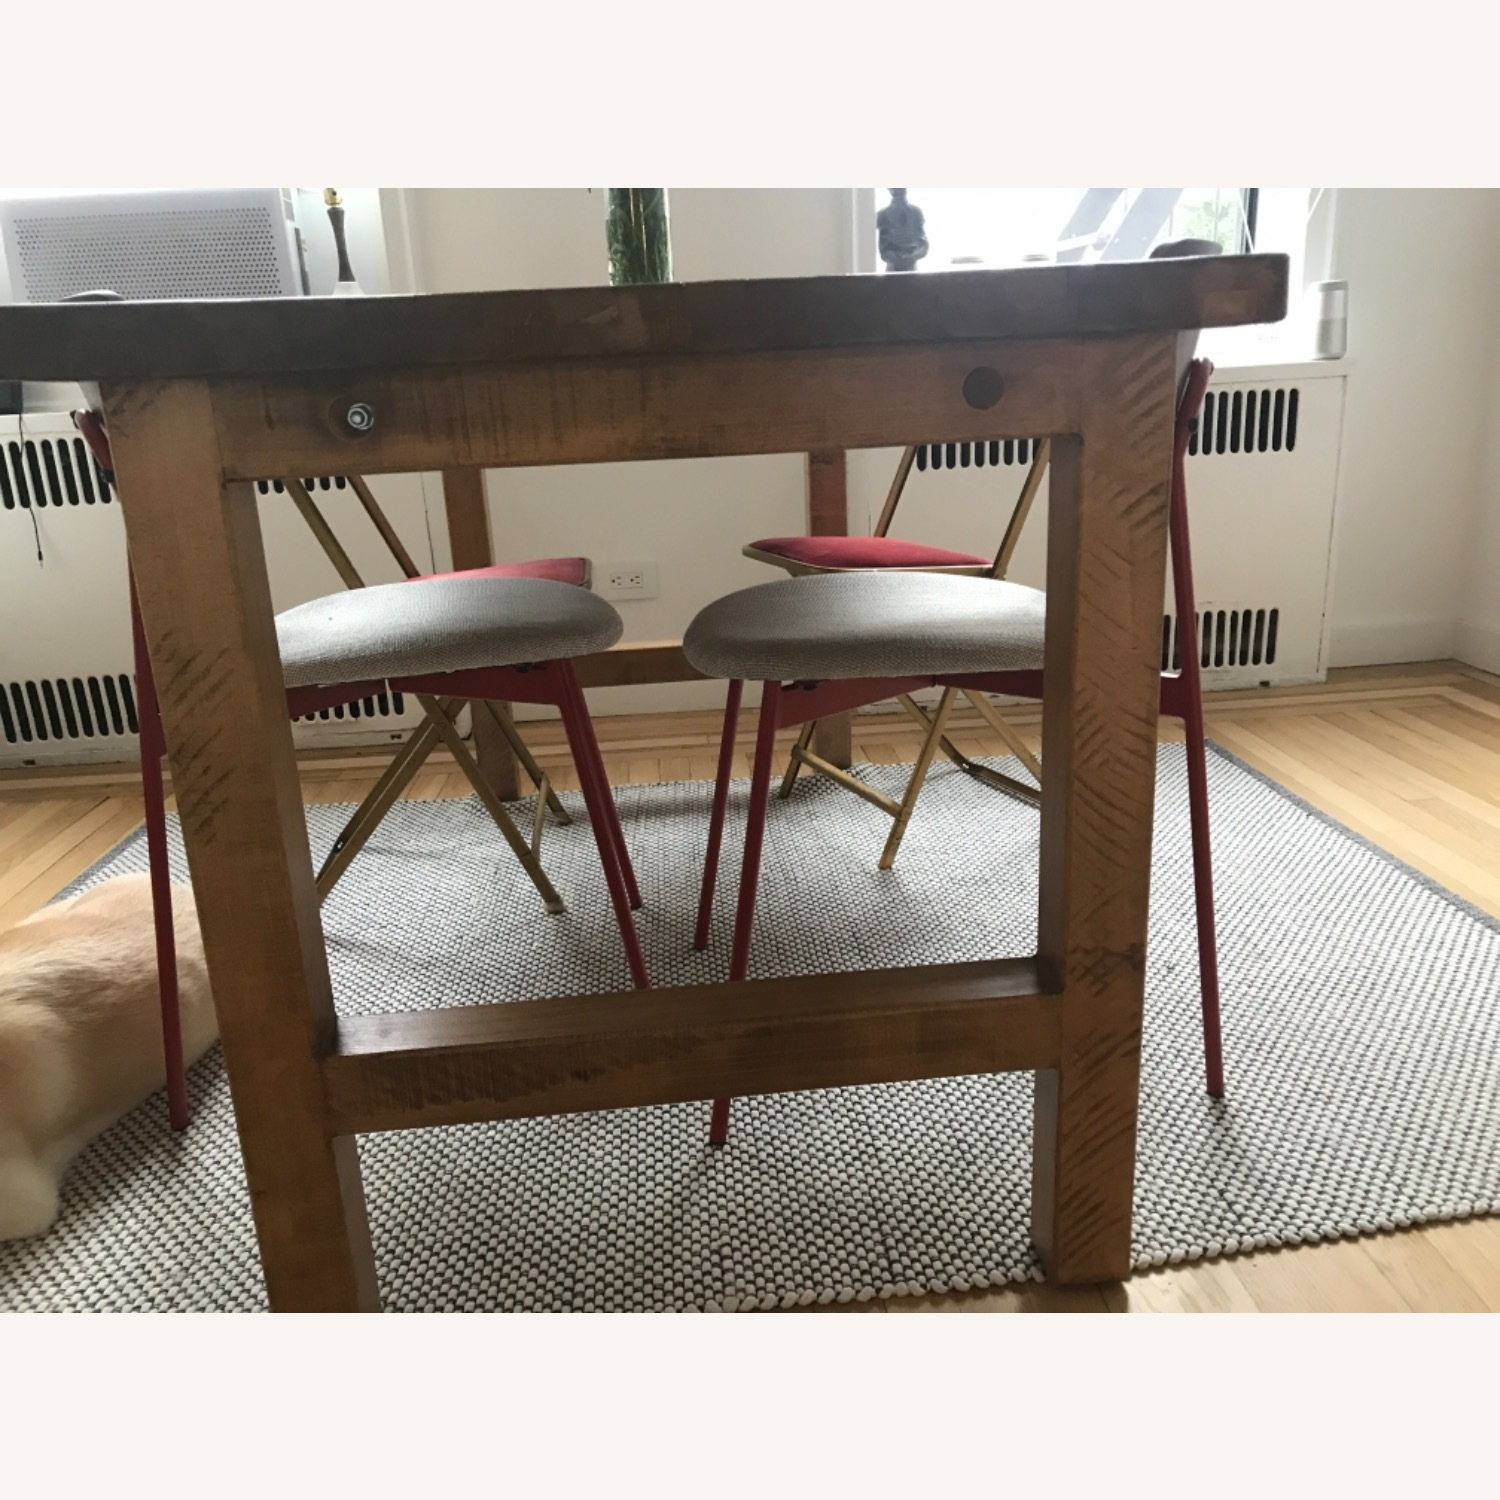 ABC Carpet and Home Reclaimed Wood Dining Table - image-3